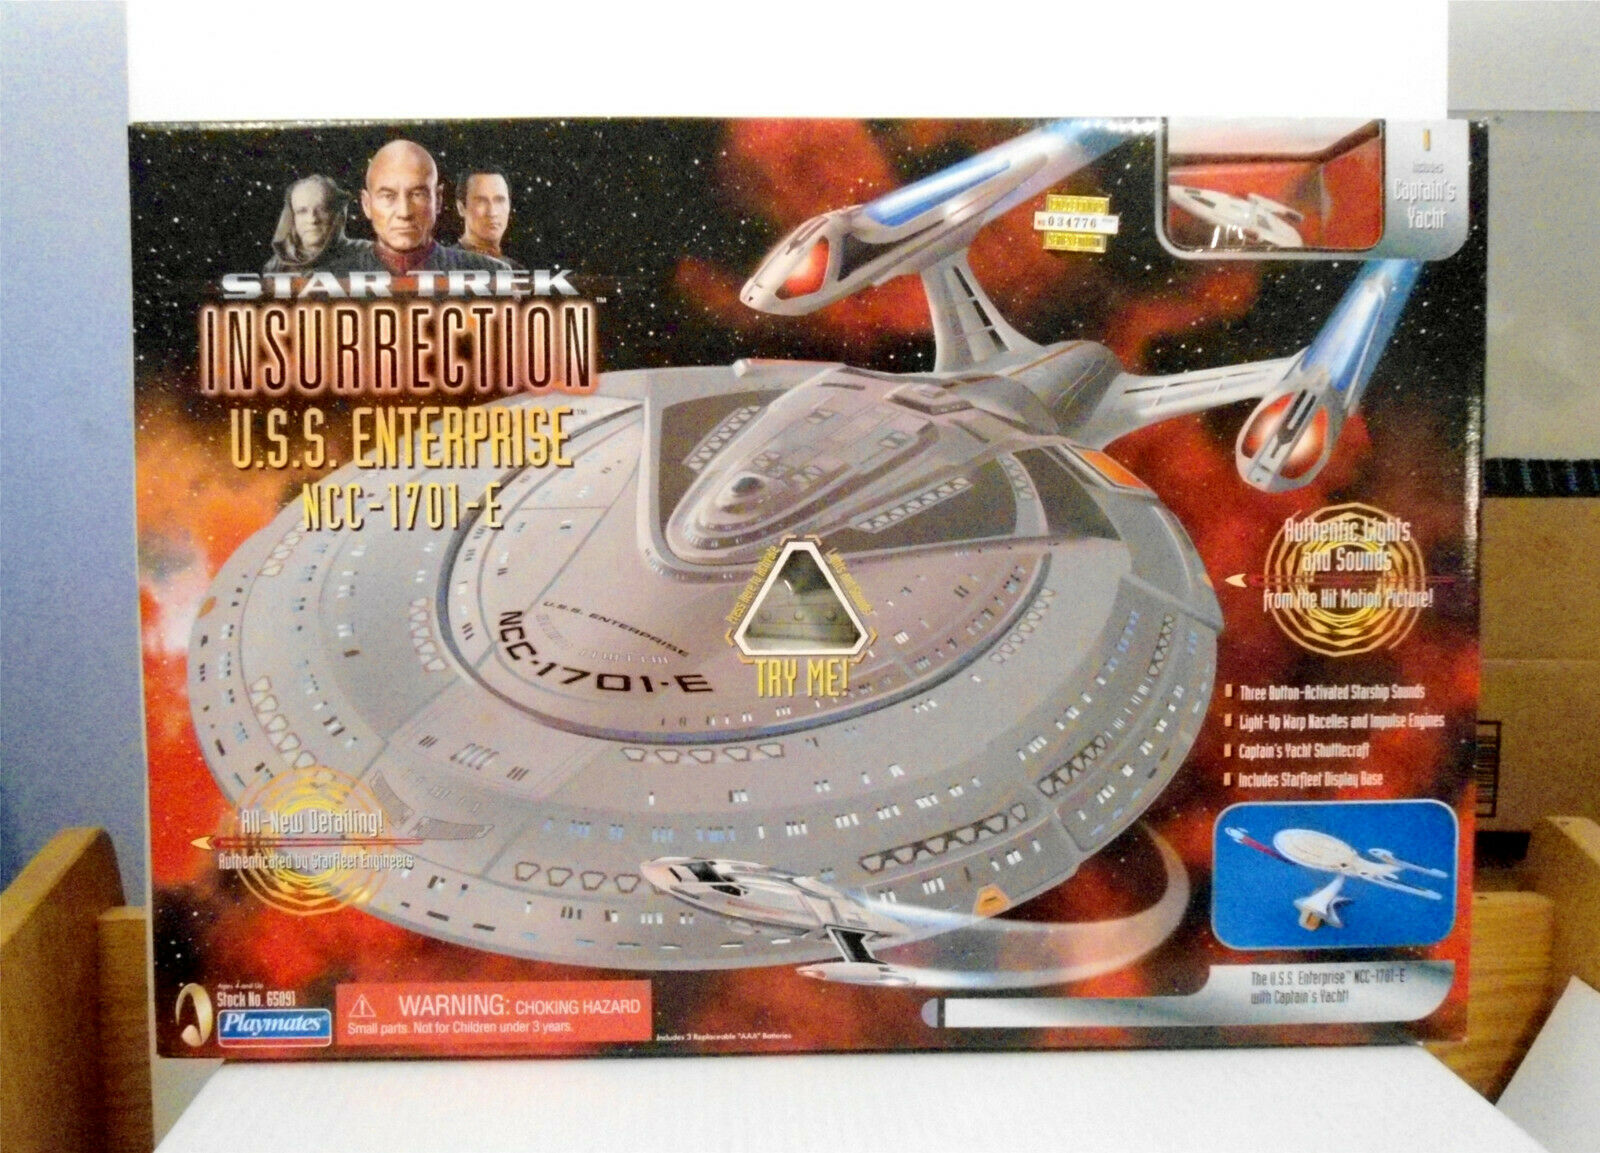 PLAYMATES STAR TREK INSURRECTION U.S.S. ENTERPRISE NCC-1701-E TOY MINT